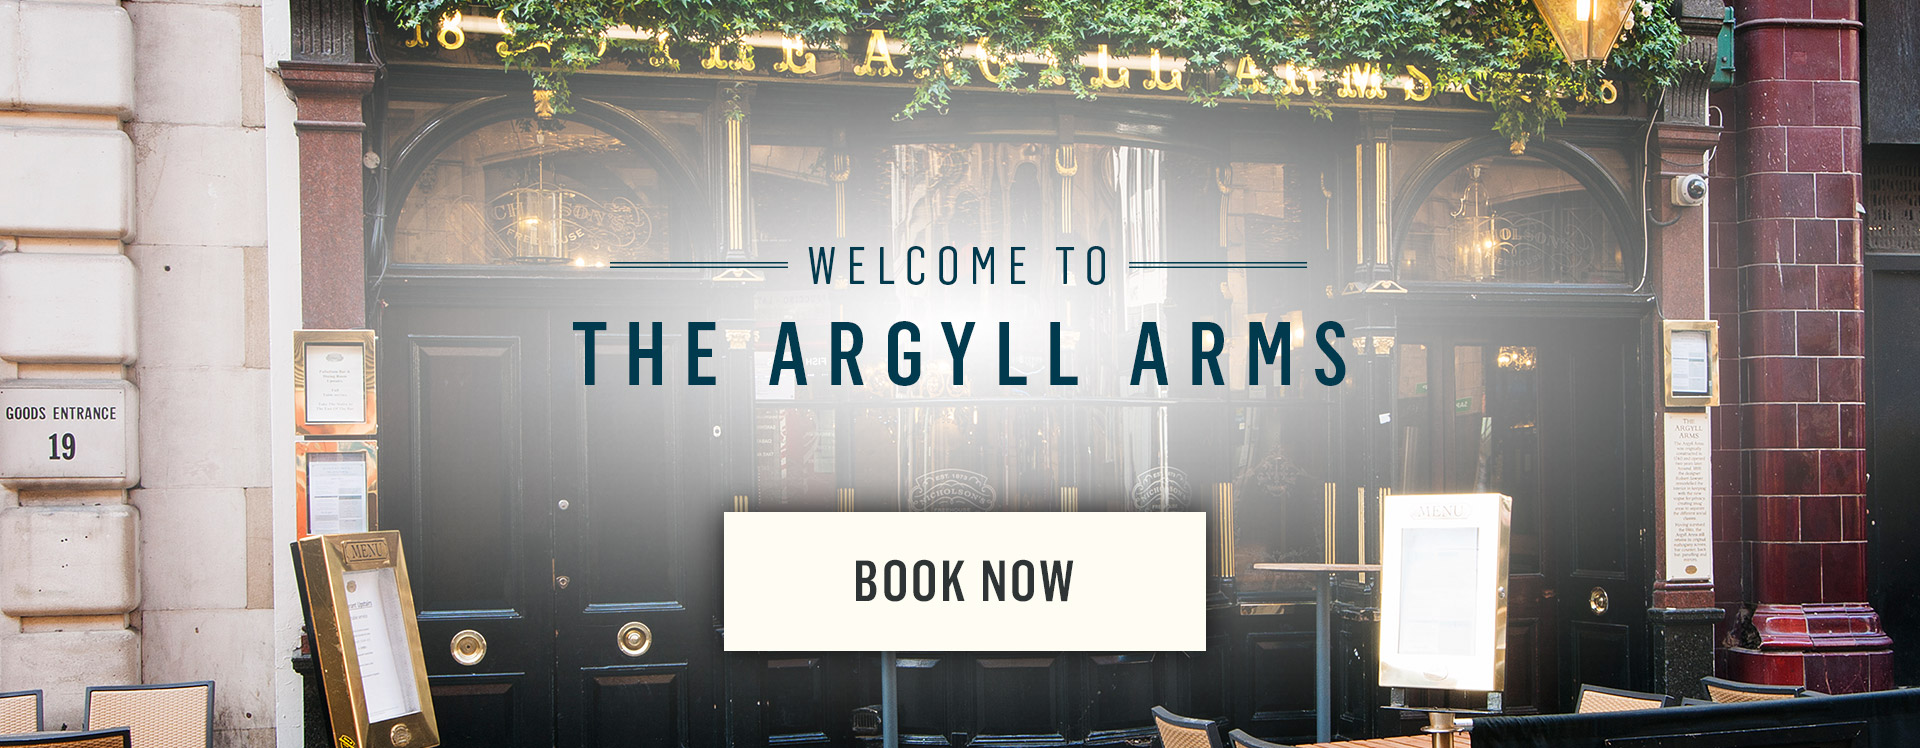 Welcome to The Argyll Arms - Book Now